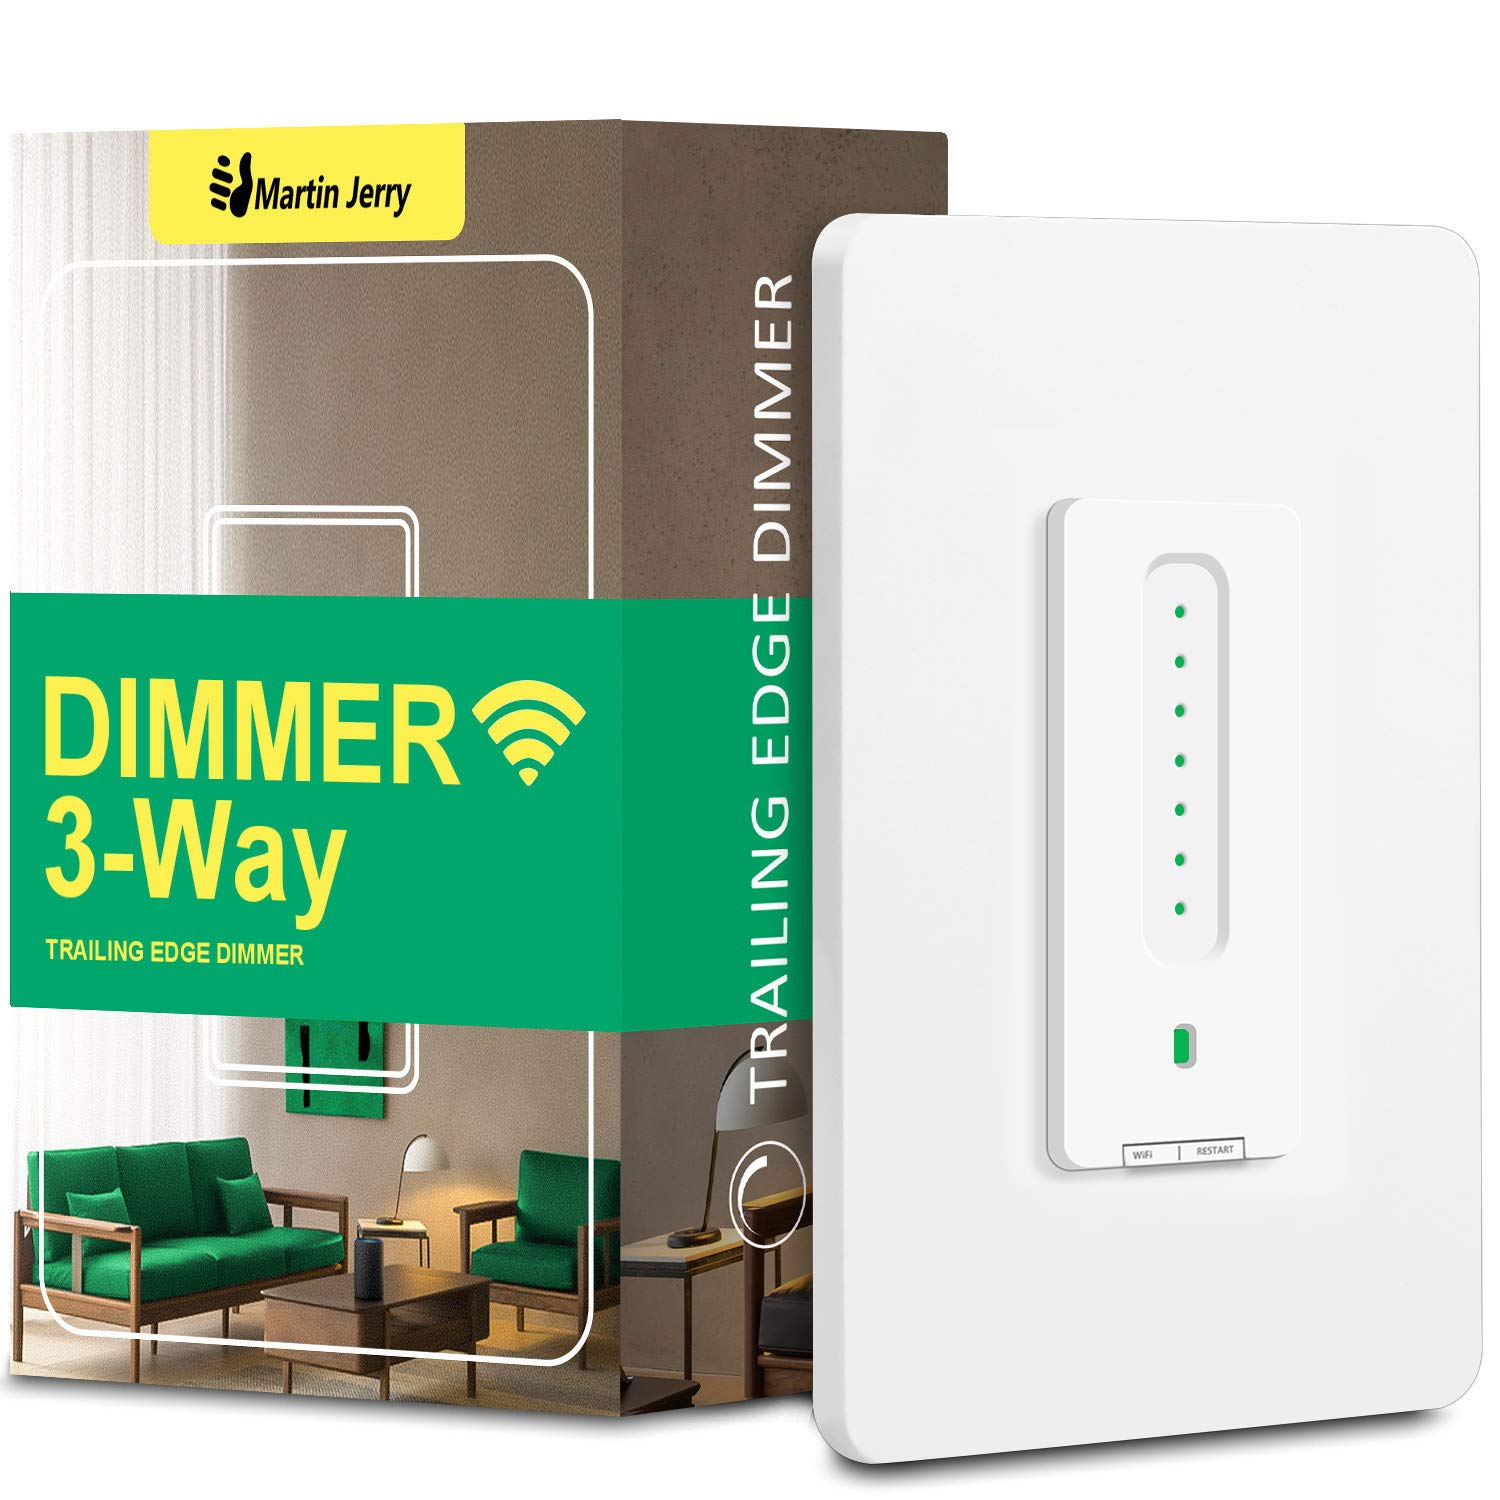 3 Way Smart Dimmer Switch by Martin Jerry | Touch Trailing Edge Dimmer, SmartLife App, Compatible with Alexa as WiFi Light Switch Dimmer, Works with Google Home